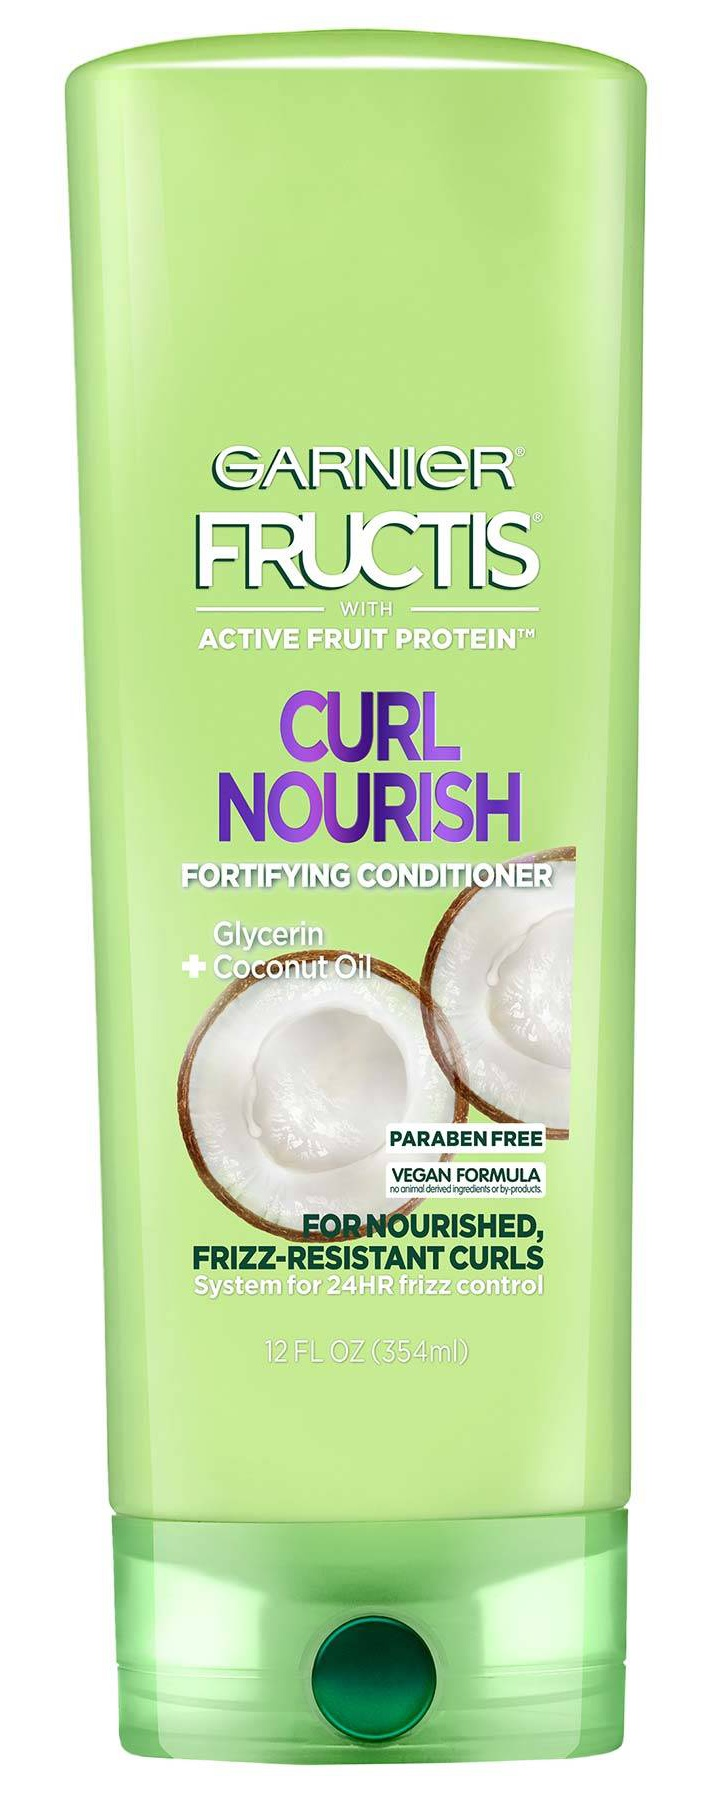 Garnier Fructis Curl Nourish Paraben-Free Conditioner Infused With Coconut Oil And Glycerin